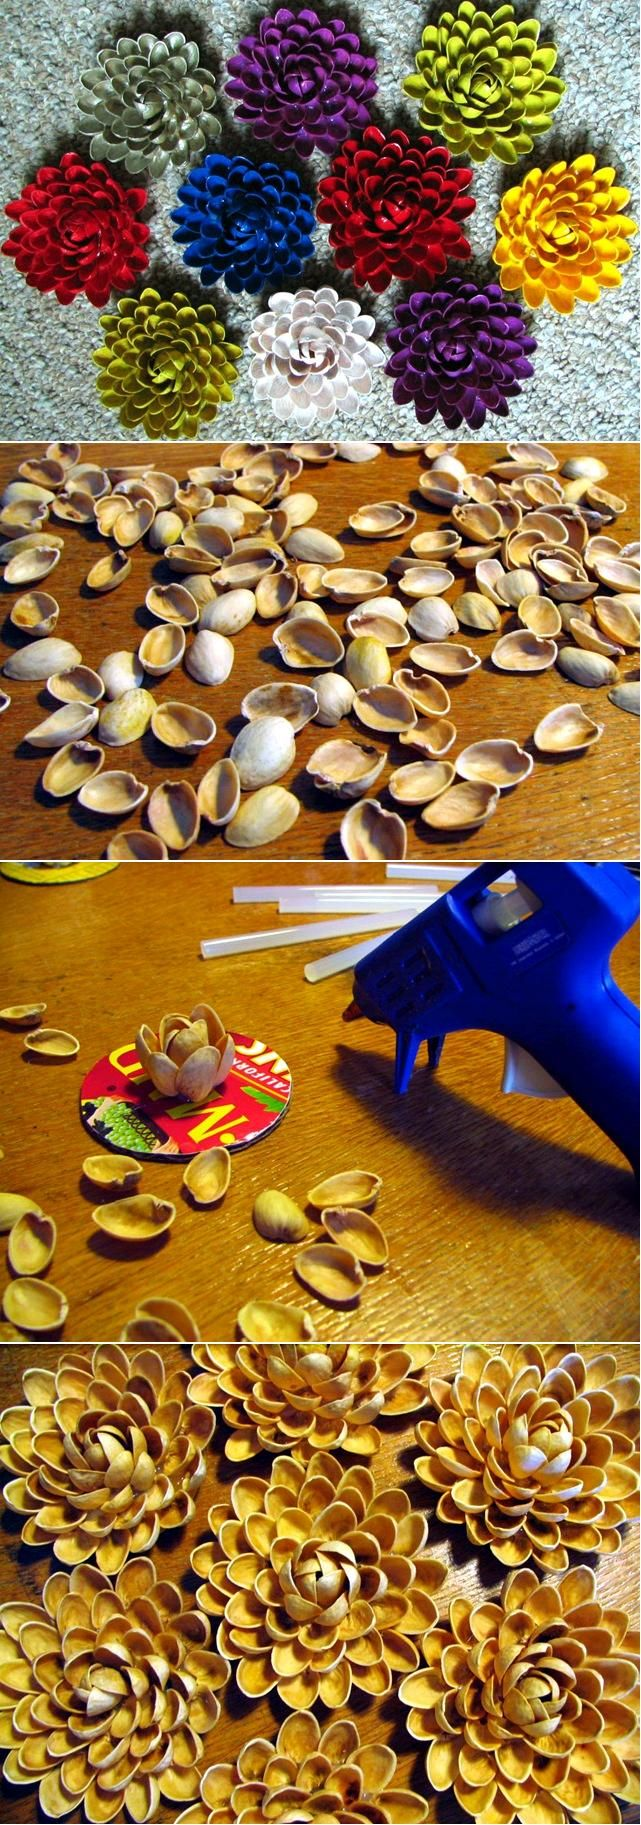 Not exactly sea shells but Pistachios Shell Flowers.. well that's different!